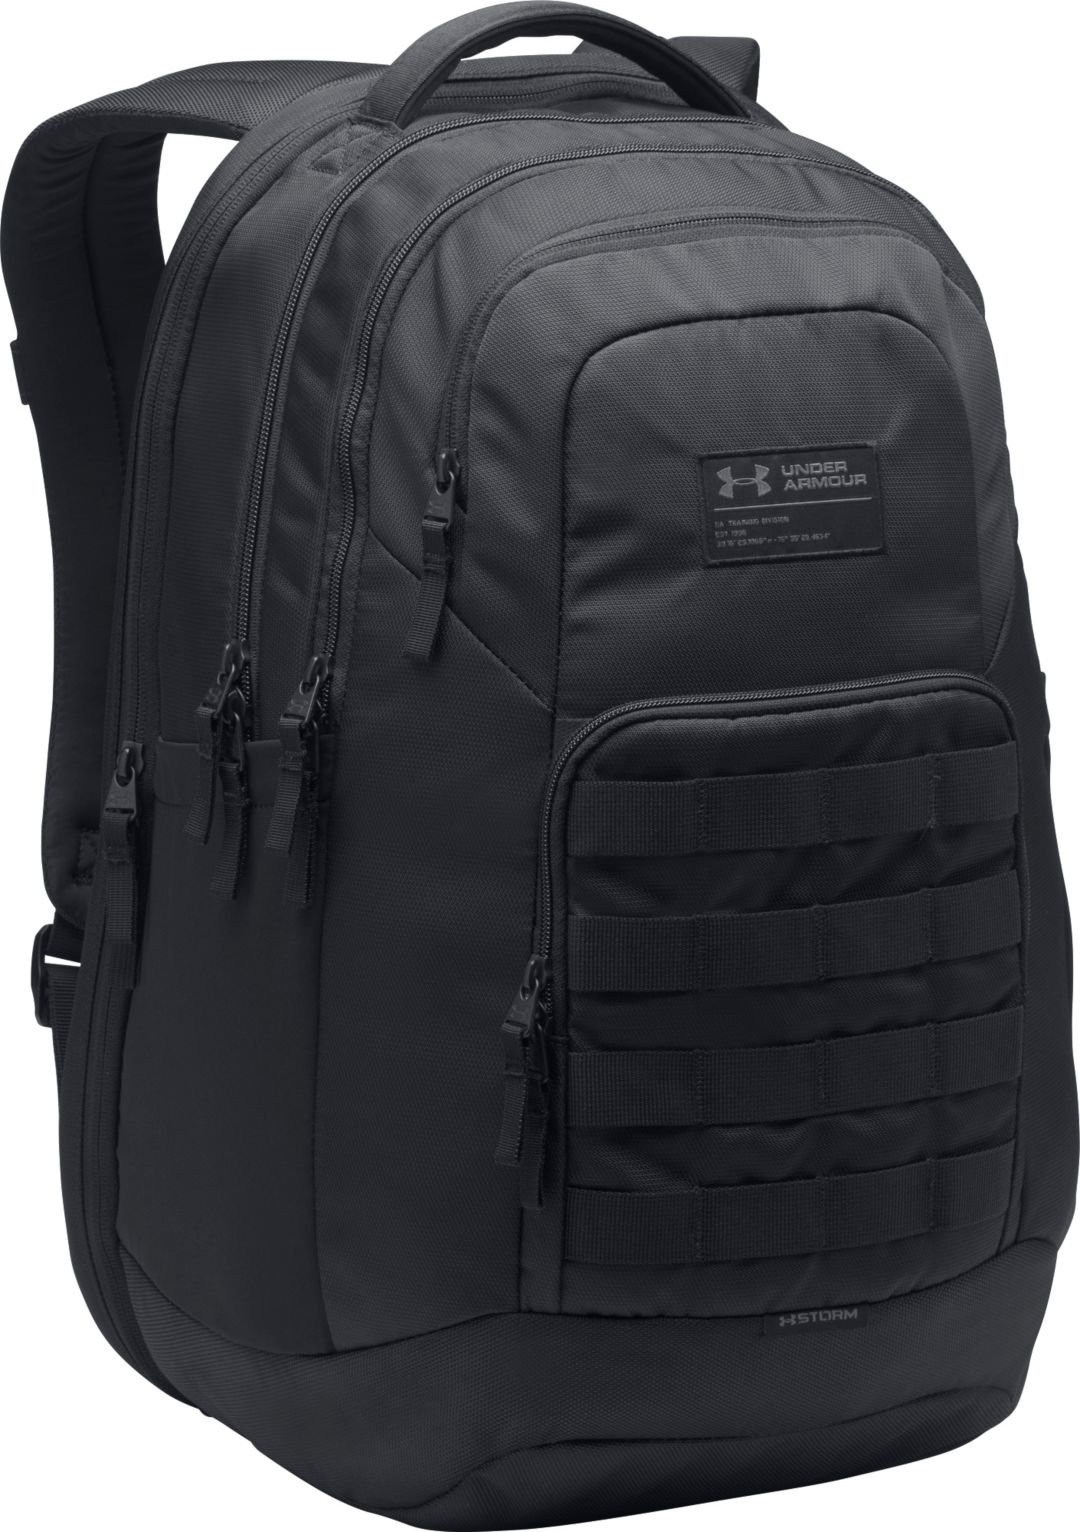 separation shoes e7275 1a935 Under Armour Guardian Backpack